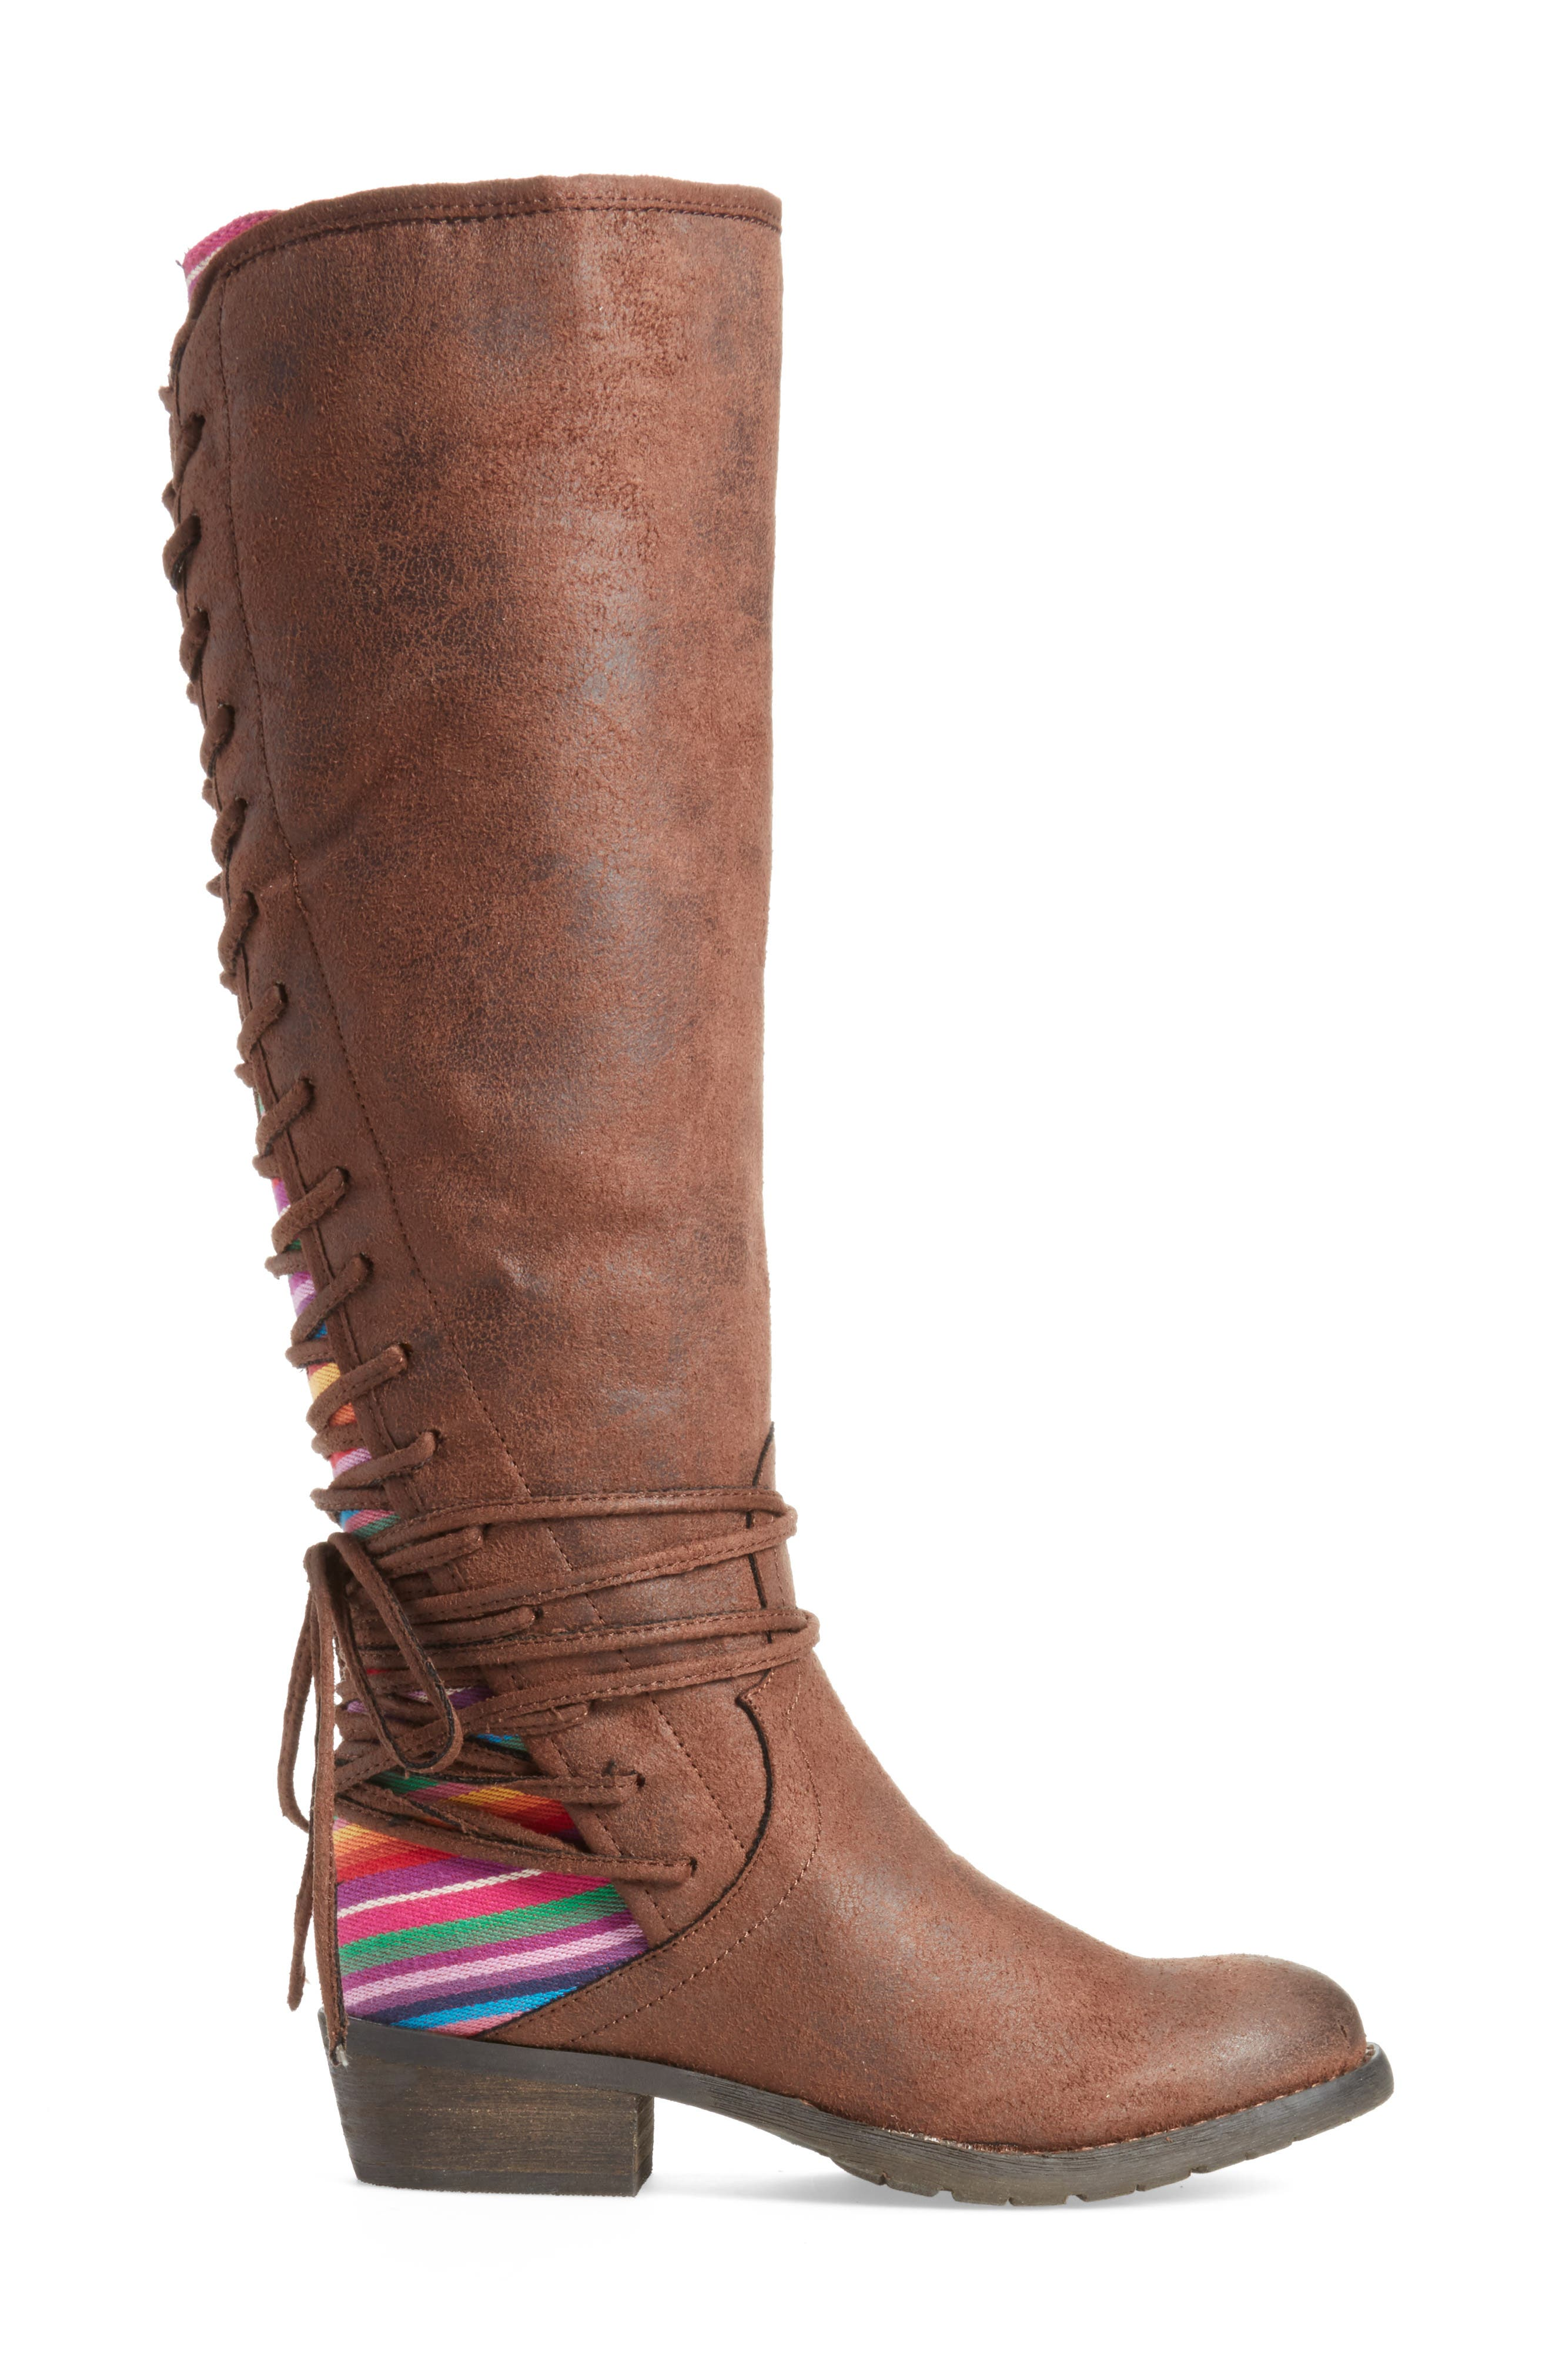 Marcel Corseted Knee High Boot,                             Alternate thumbnail 3, color,                             SERAPE